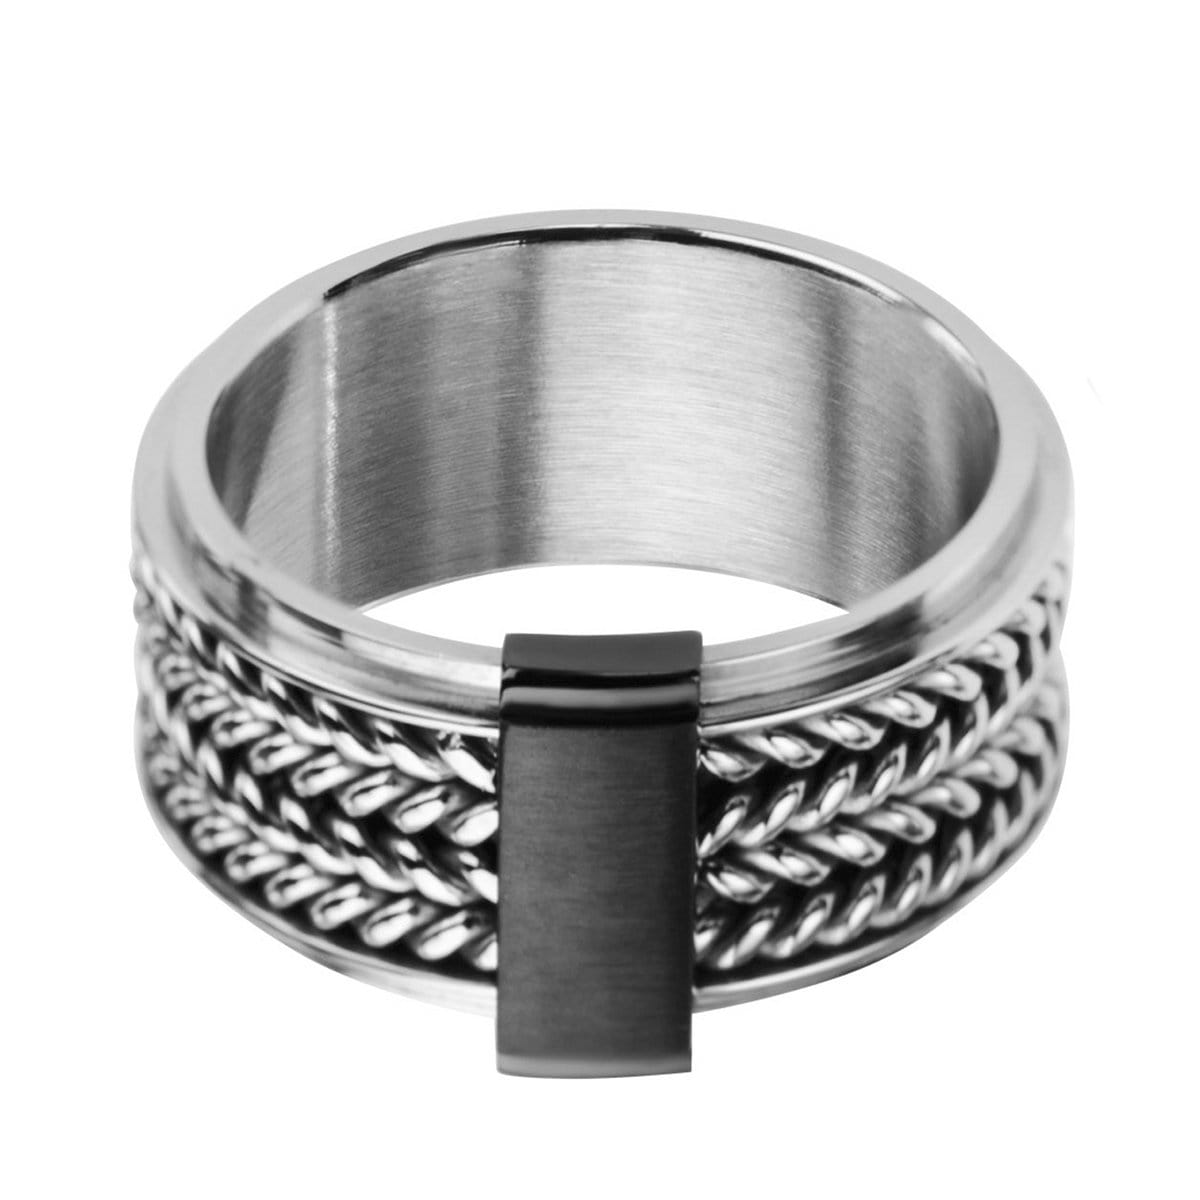 Silver Stainless Steel Inlaid Braid with Black Bar Band Rings